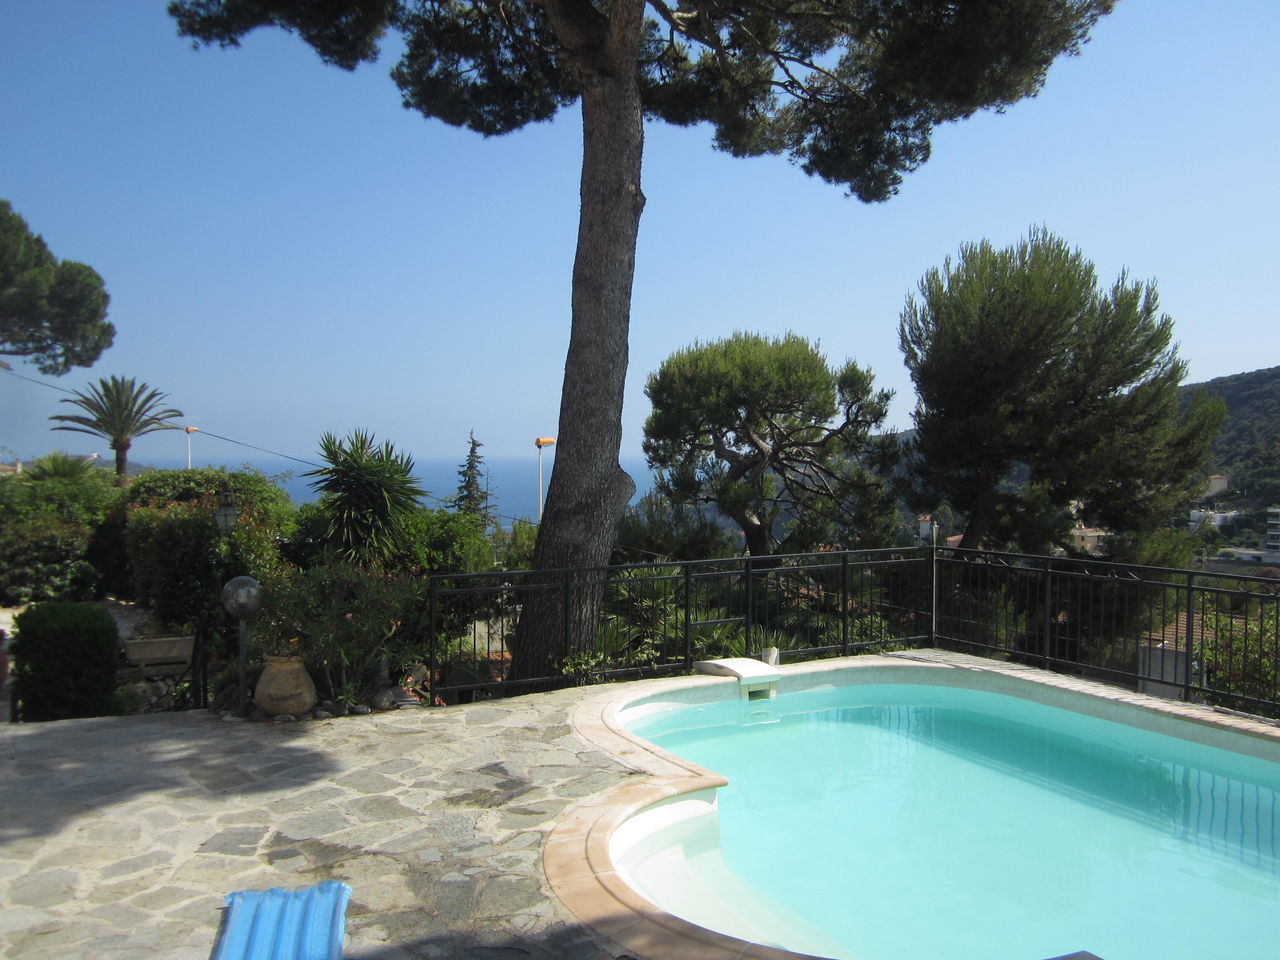 """View of the bay of Villefranche-sur-mer from a traditional villa on the Col de Villefranche (""""Villefranche hill""""). Villefranche is a small town situated between Nice and Monaco. Calm Côte D'Azur Day Europe Fresh Air Mediterranean  Nature Nice No People Outdoor Pool Outdoors Palm Tree Pine Tree Relaxation Room With A View Sky South Of France Summer Summer Views Swimming Pool Tranquility Tree Villa Villefranche Sur Mer Water"""